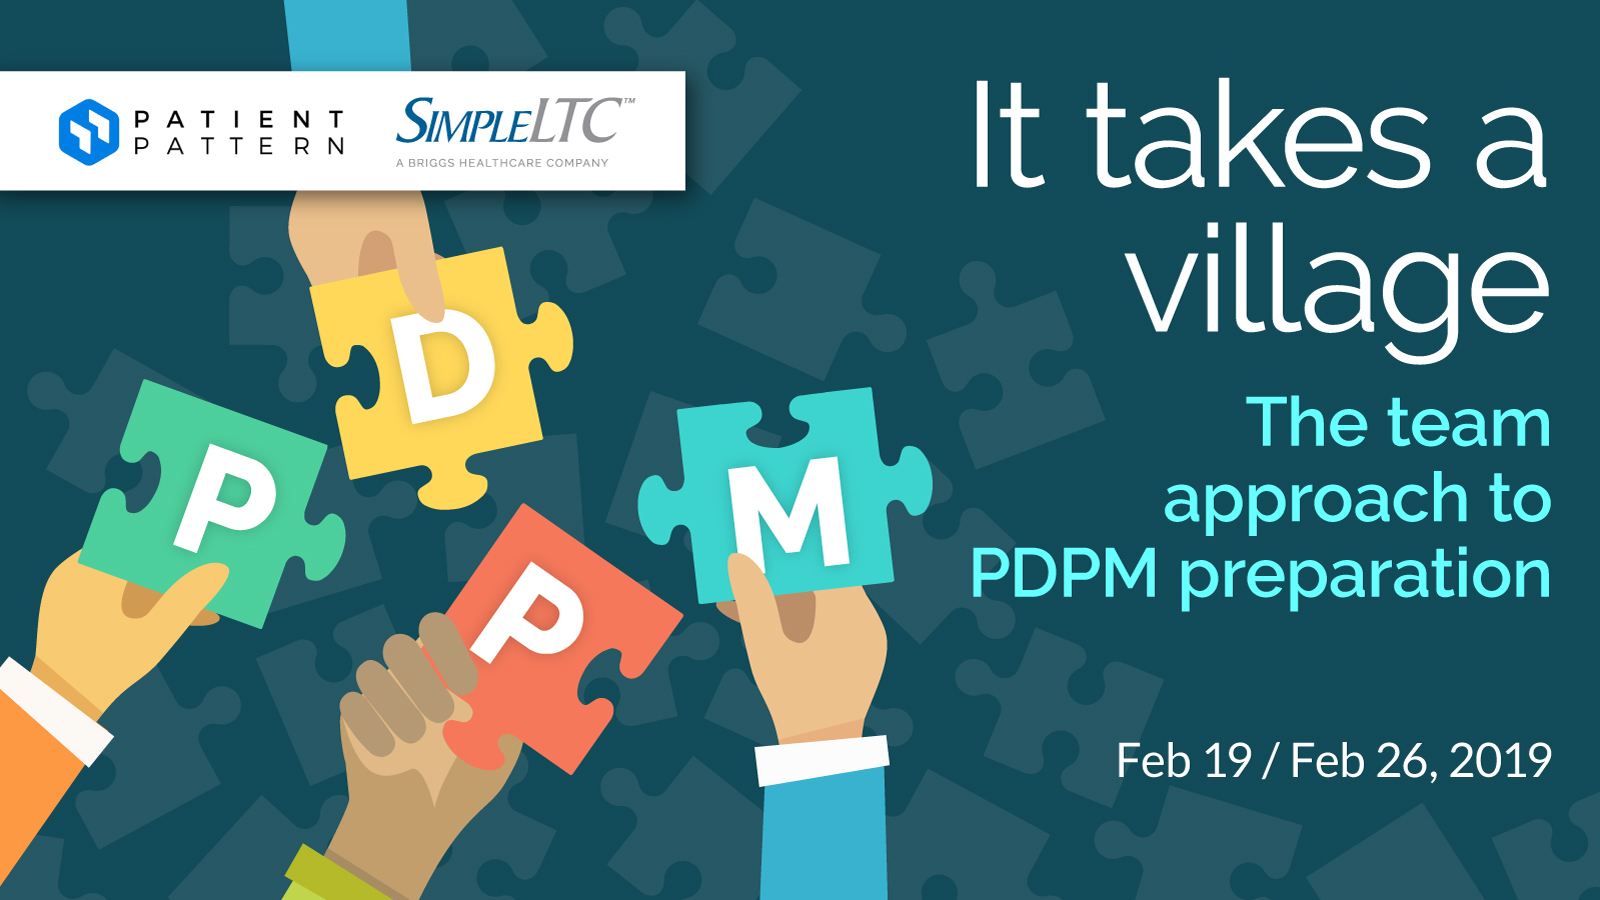 It takes a village: The team approach to PDPM